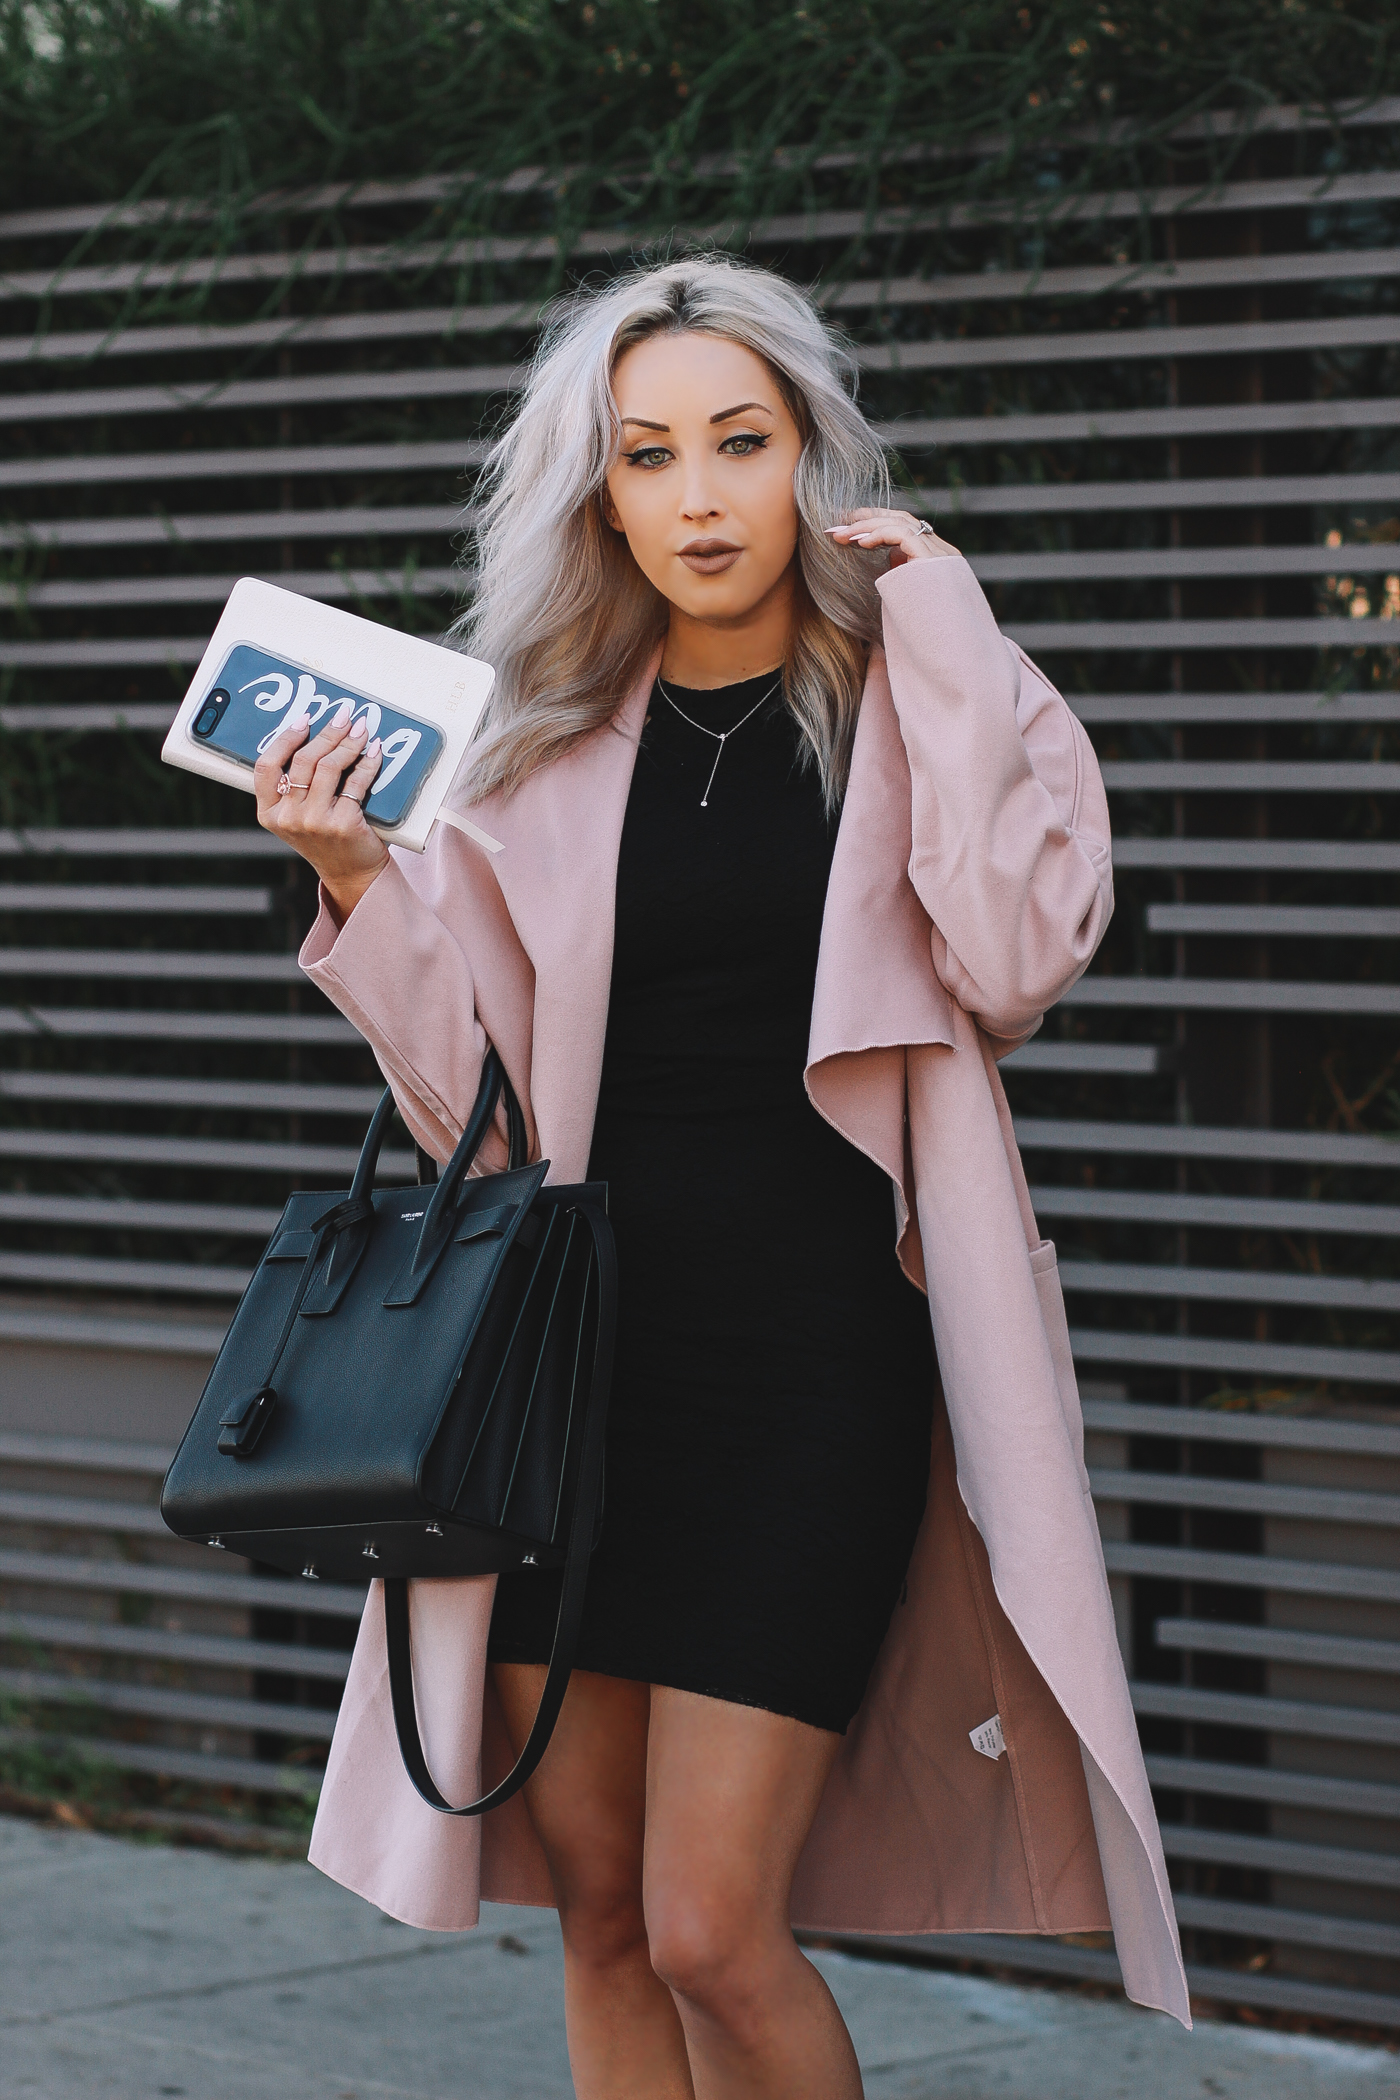 Blondie in the City | Busy Bride | Beverly Hills Street Style | #BusyBride Notebook | Bride iPhone Case @casetify